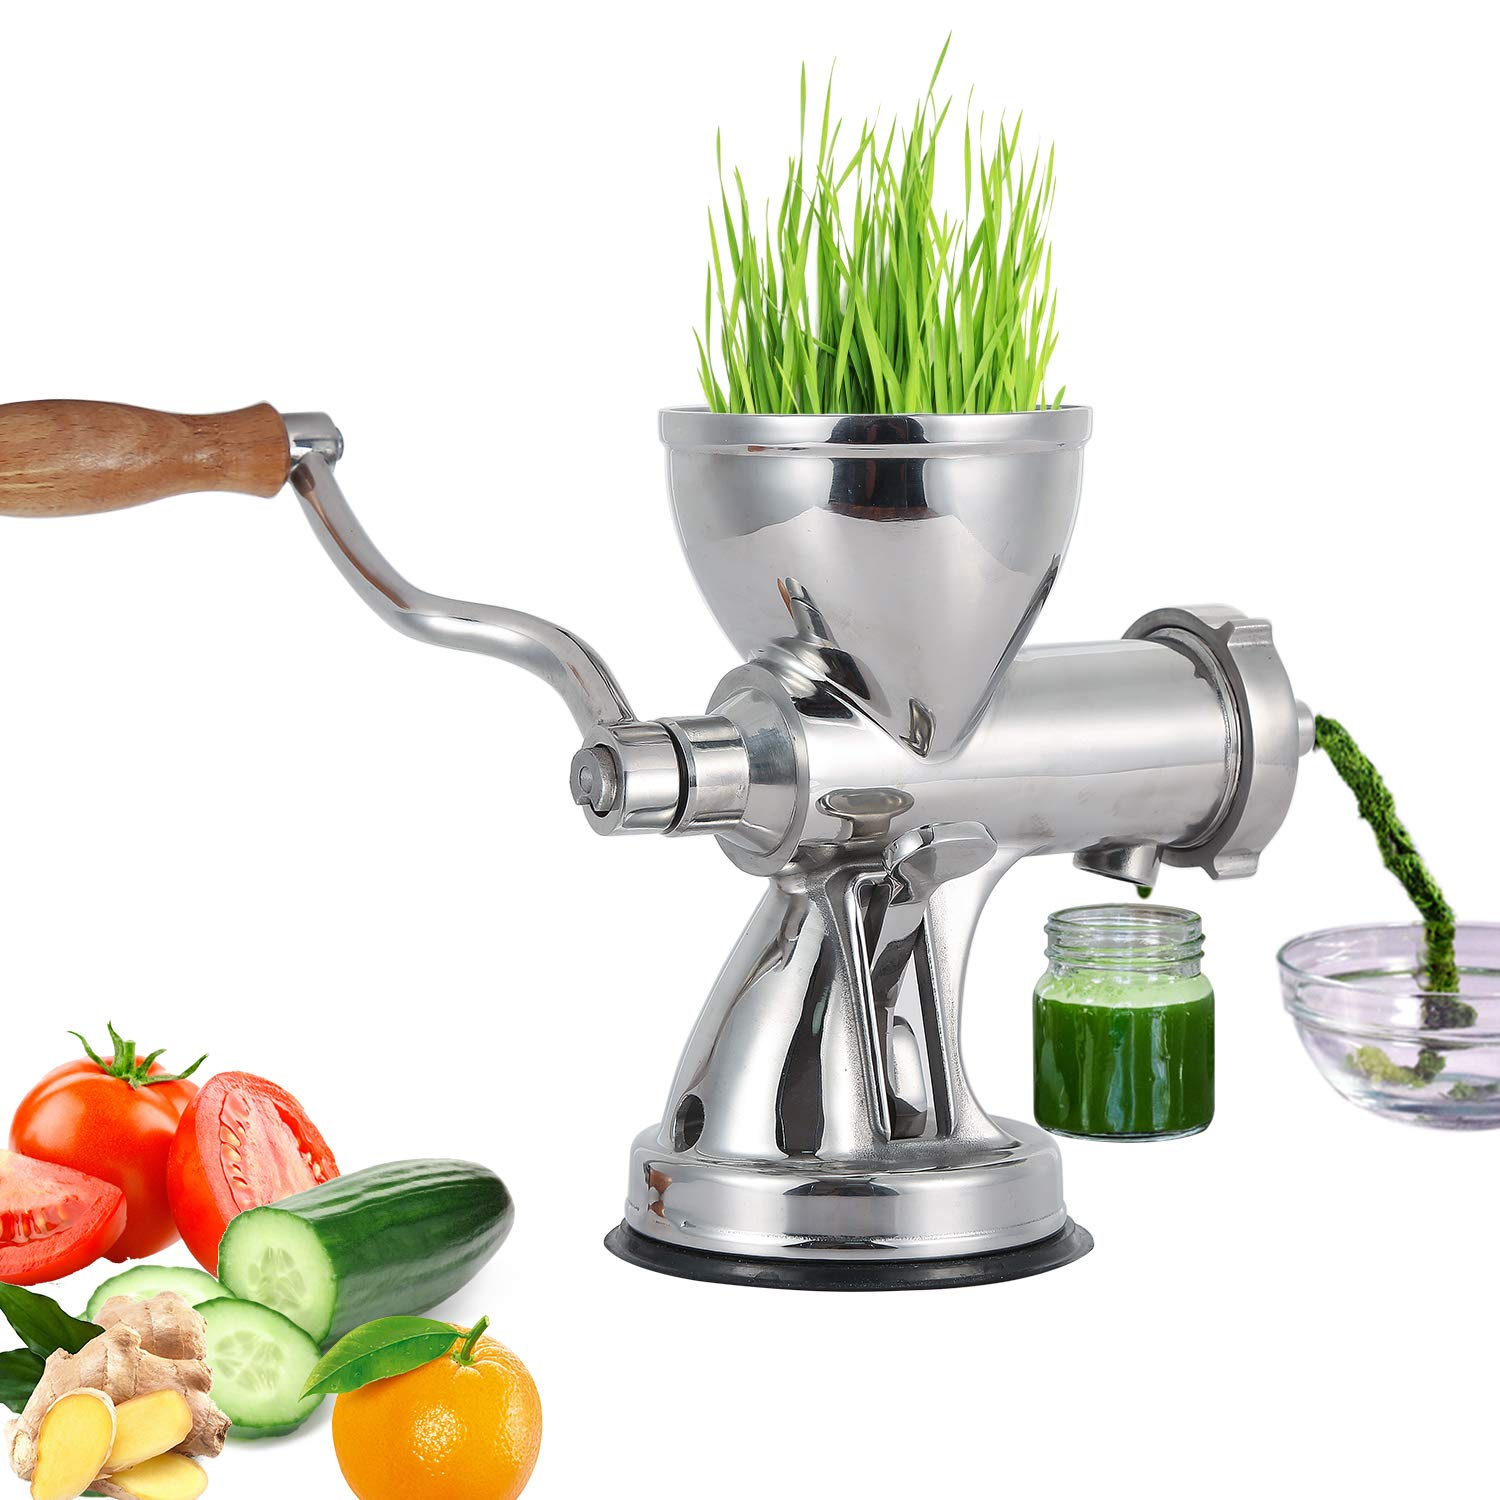 Heavy Duty Stainless Steel Wheatgrass Manual Juicer, Superb Juice Extraction with Vacuum Suction Cup Home DIY Kitchen Tool for Soft Fruit Vegetable Leafy Green by Dltsli